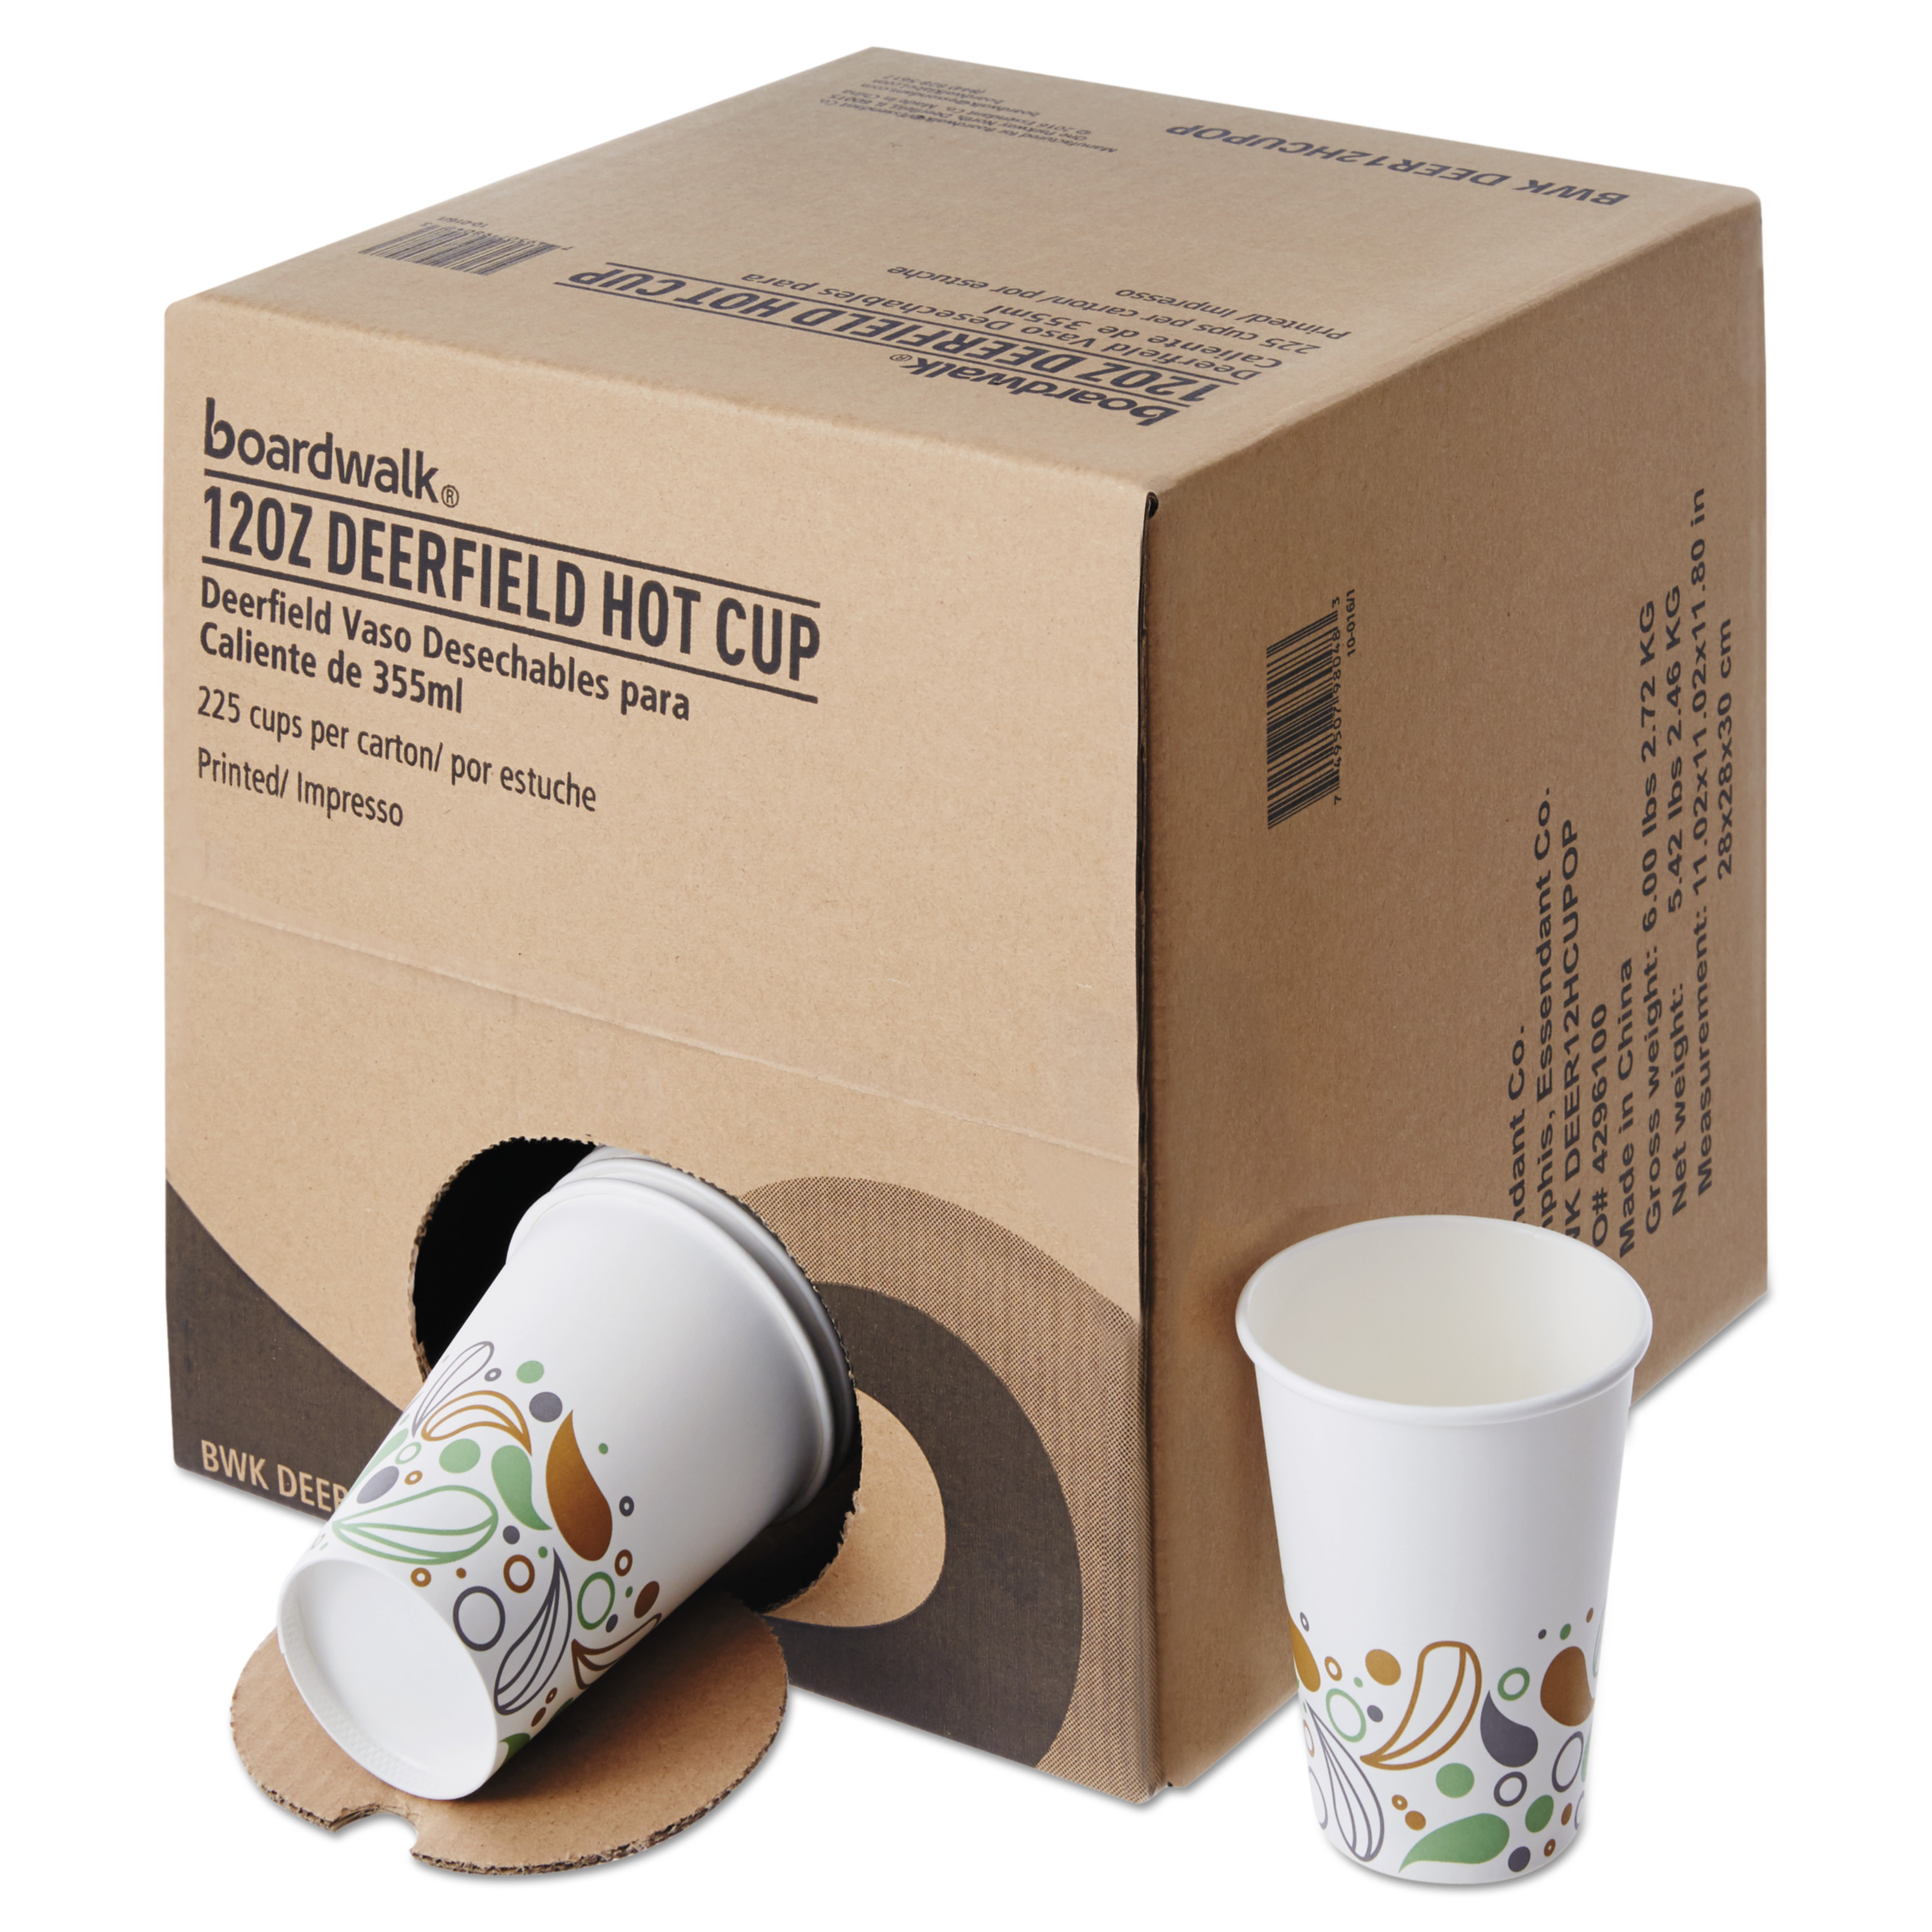 Boardwalk Convenience Pack Paper Hot Cups, 12 oz, Deerfield Print, 225/Carton -BWKDEER12HCUPOP